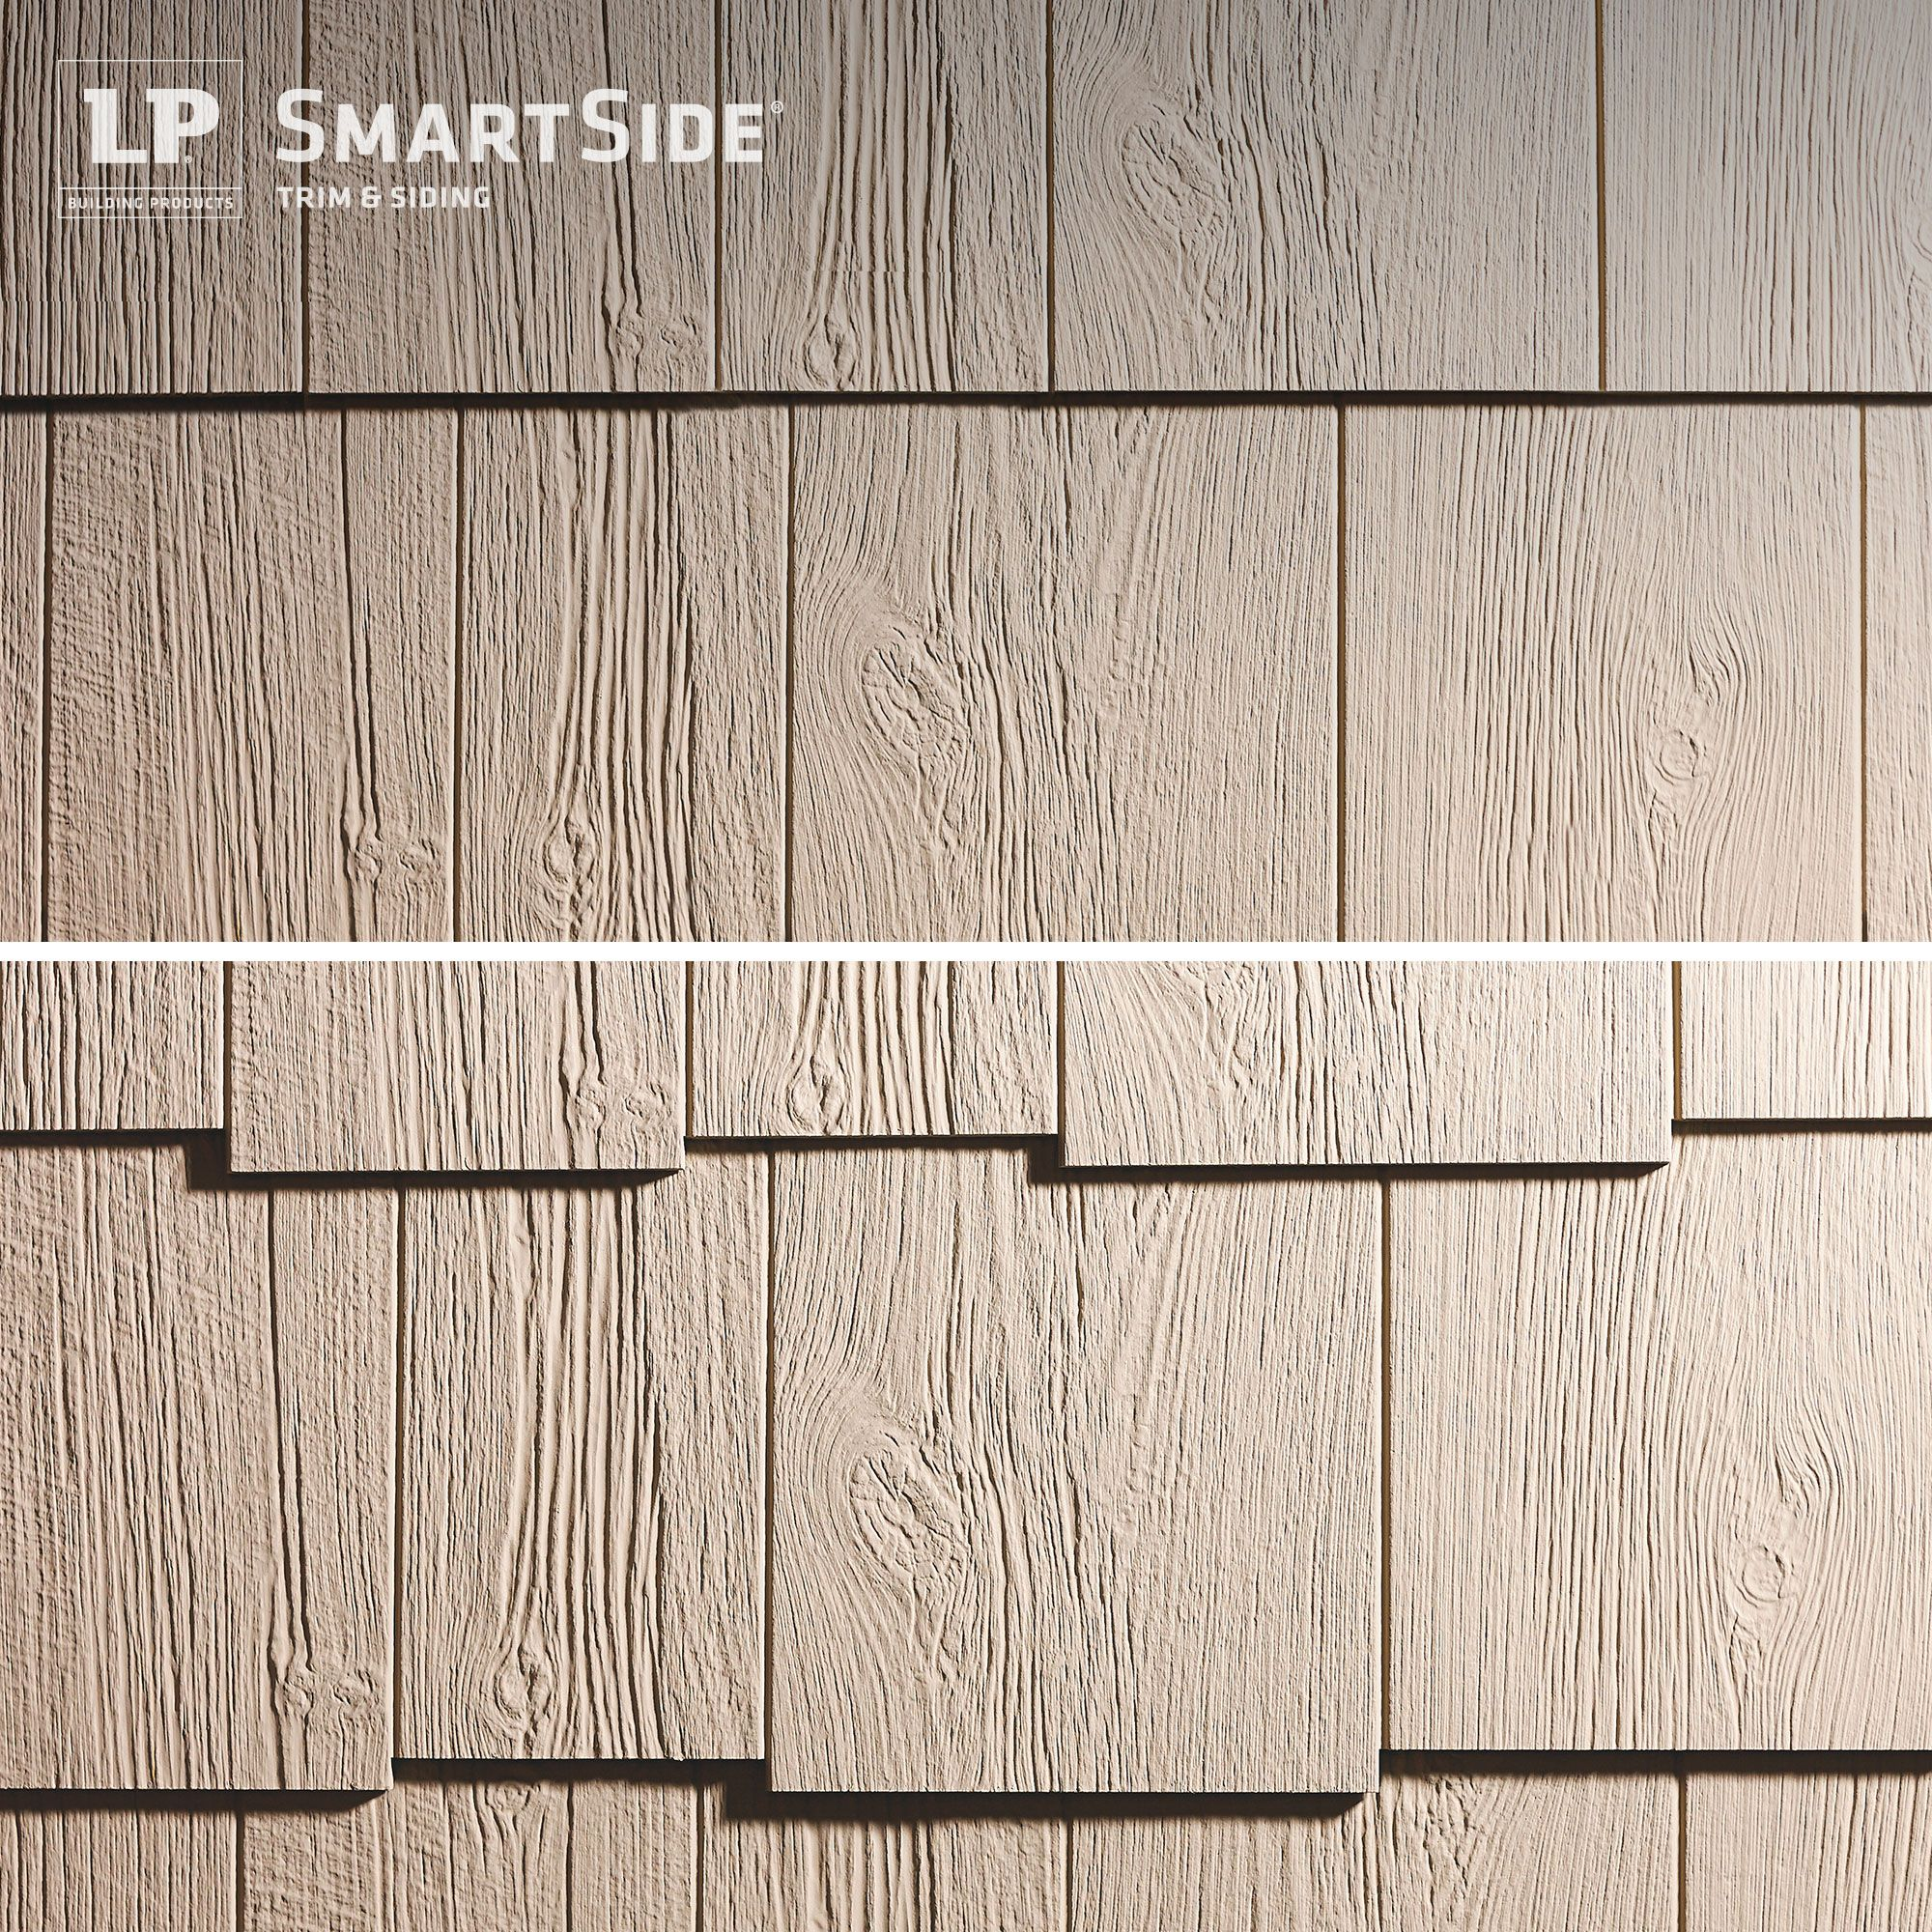 Lp Smartside Cedar Shakes Can Be Used To Create Either A Staggered Or A Straight Edge Look Cedar Shake Siding Exterior Siding Shake Siding